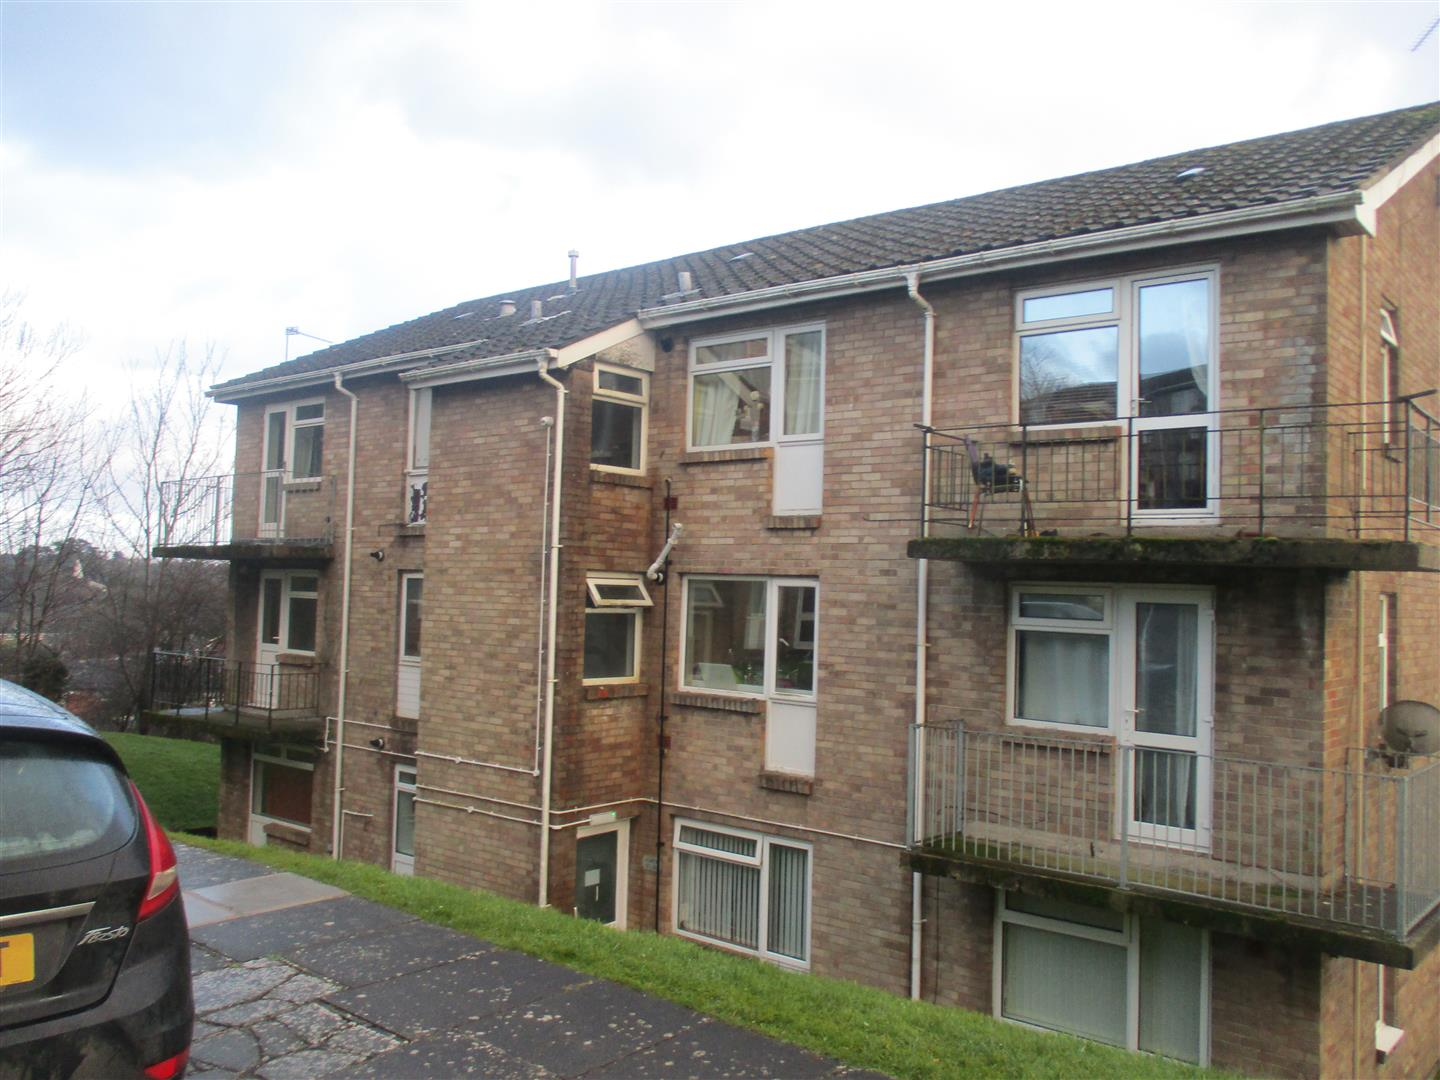 2 Bedrooms Flat for sale in Greenland Crescent, Cardiff